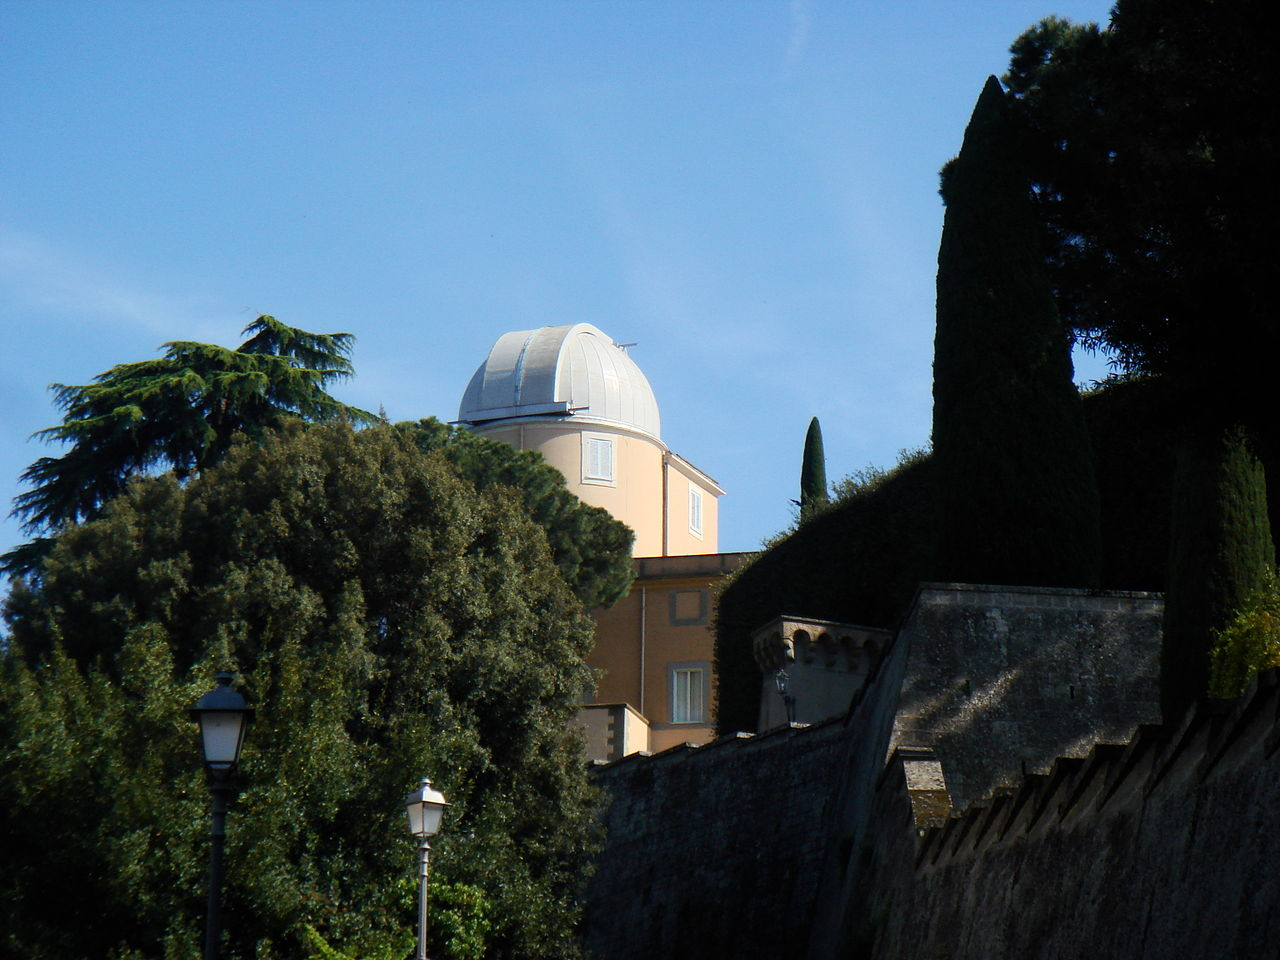 Vatican observatory and the Pontificial Palace in Castel Gandolfo with the Giardino del Moro